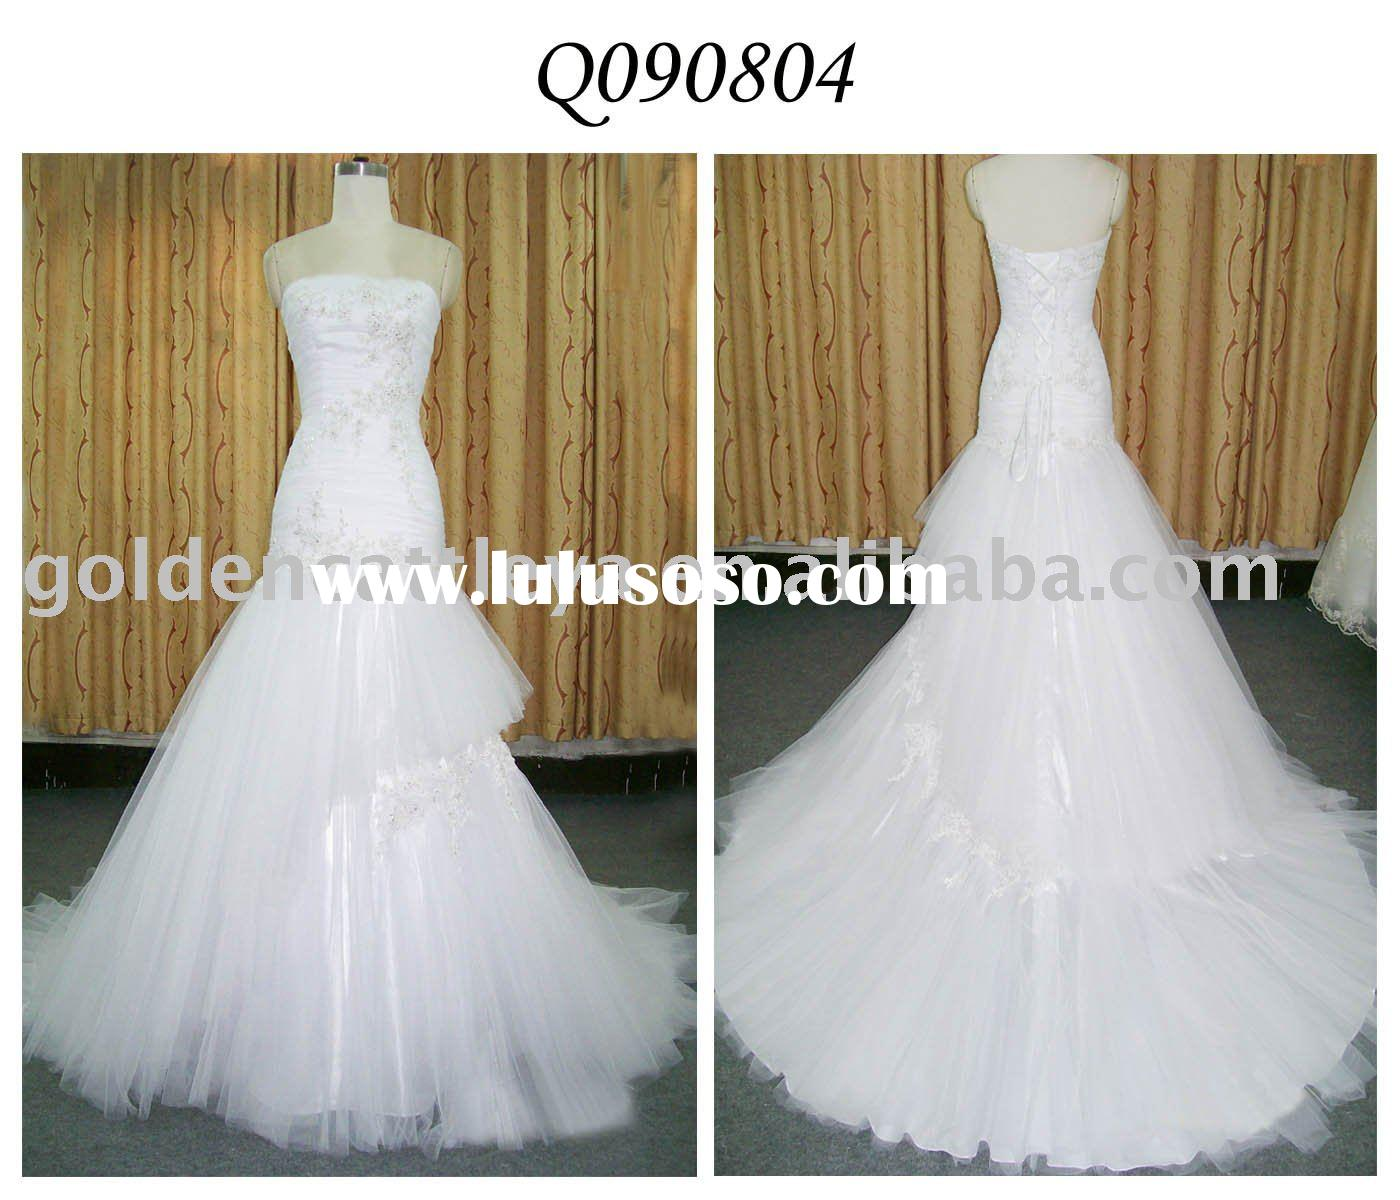 Q090804 gorgeous strapless beaded & pleated wedding dress patterns